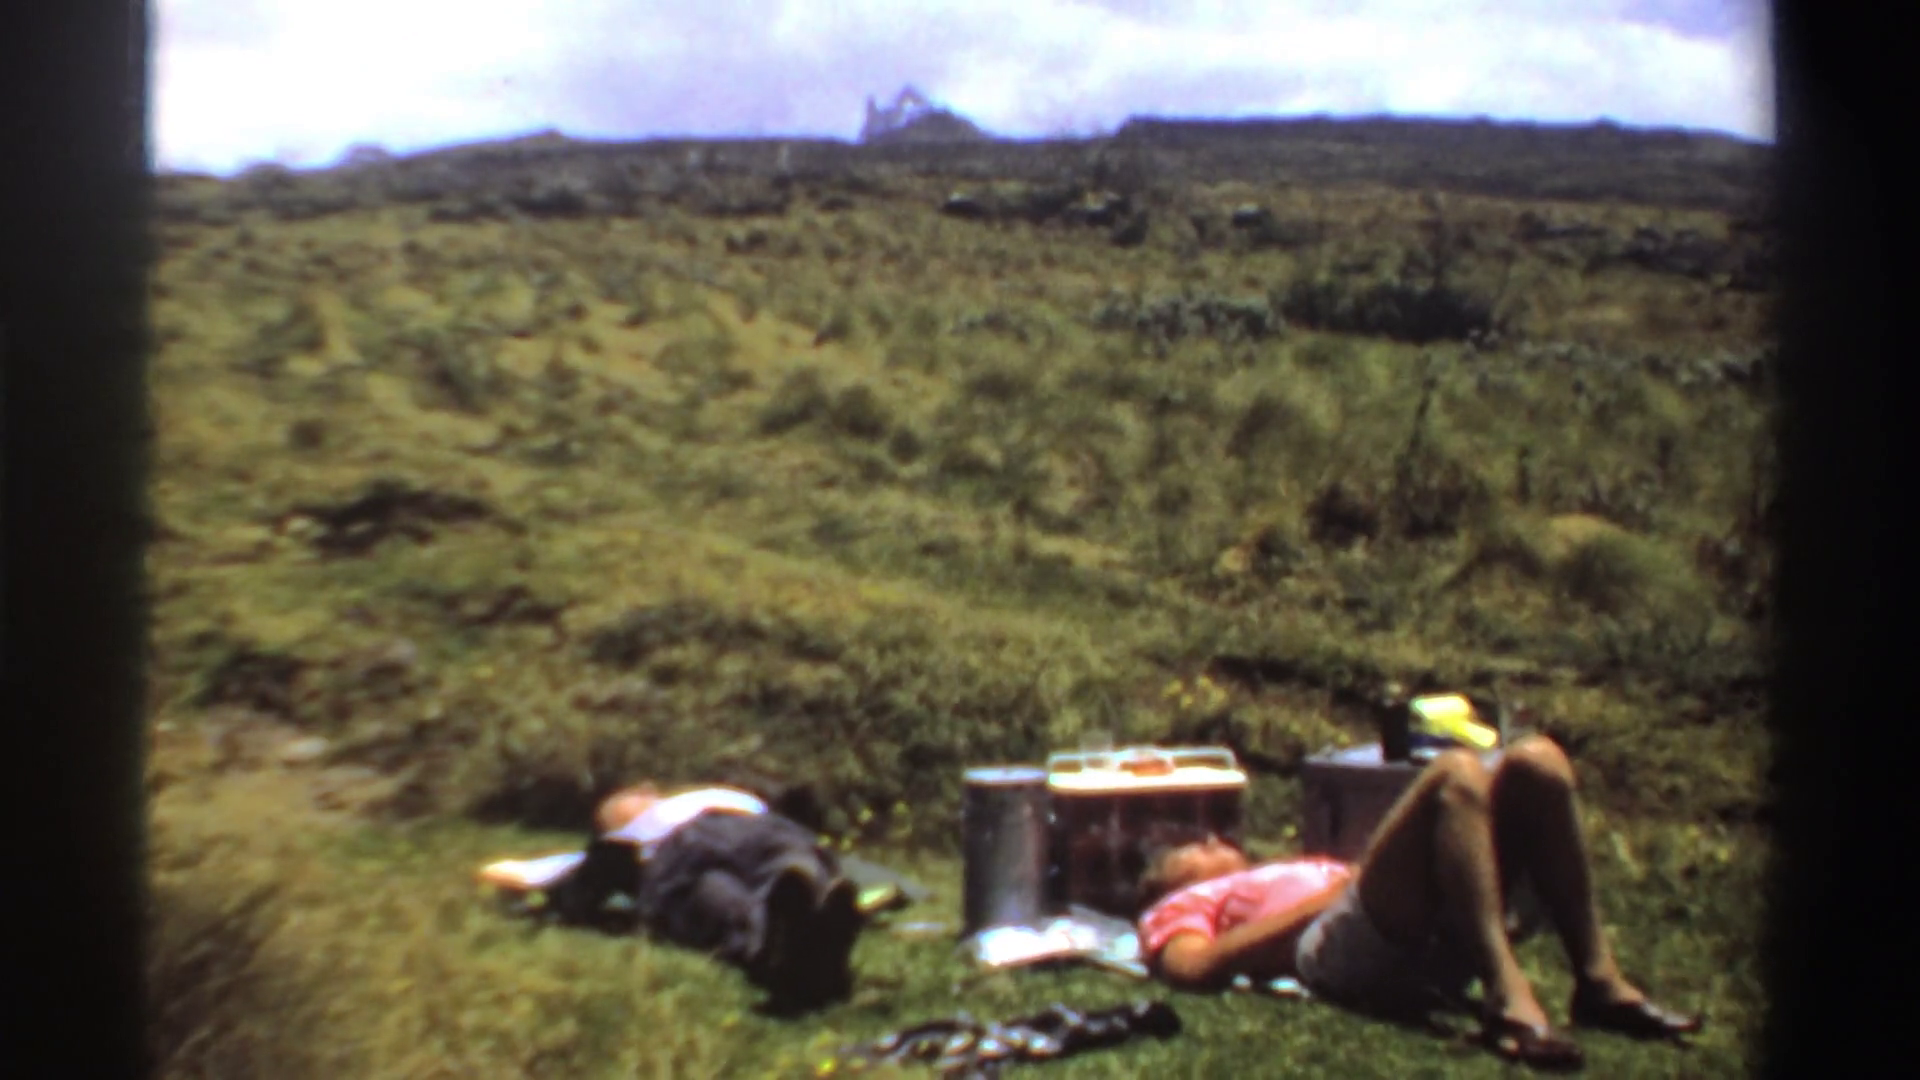 Two People Relaxing Png - 1969: two people enjoy a relaxing nap in a field. SUDAN Stock ...